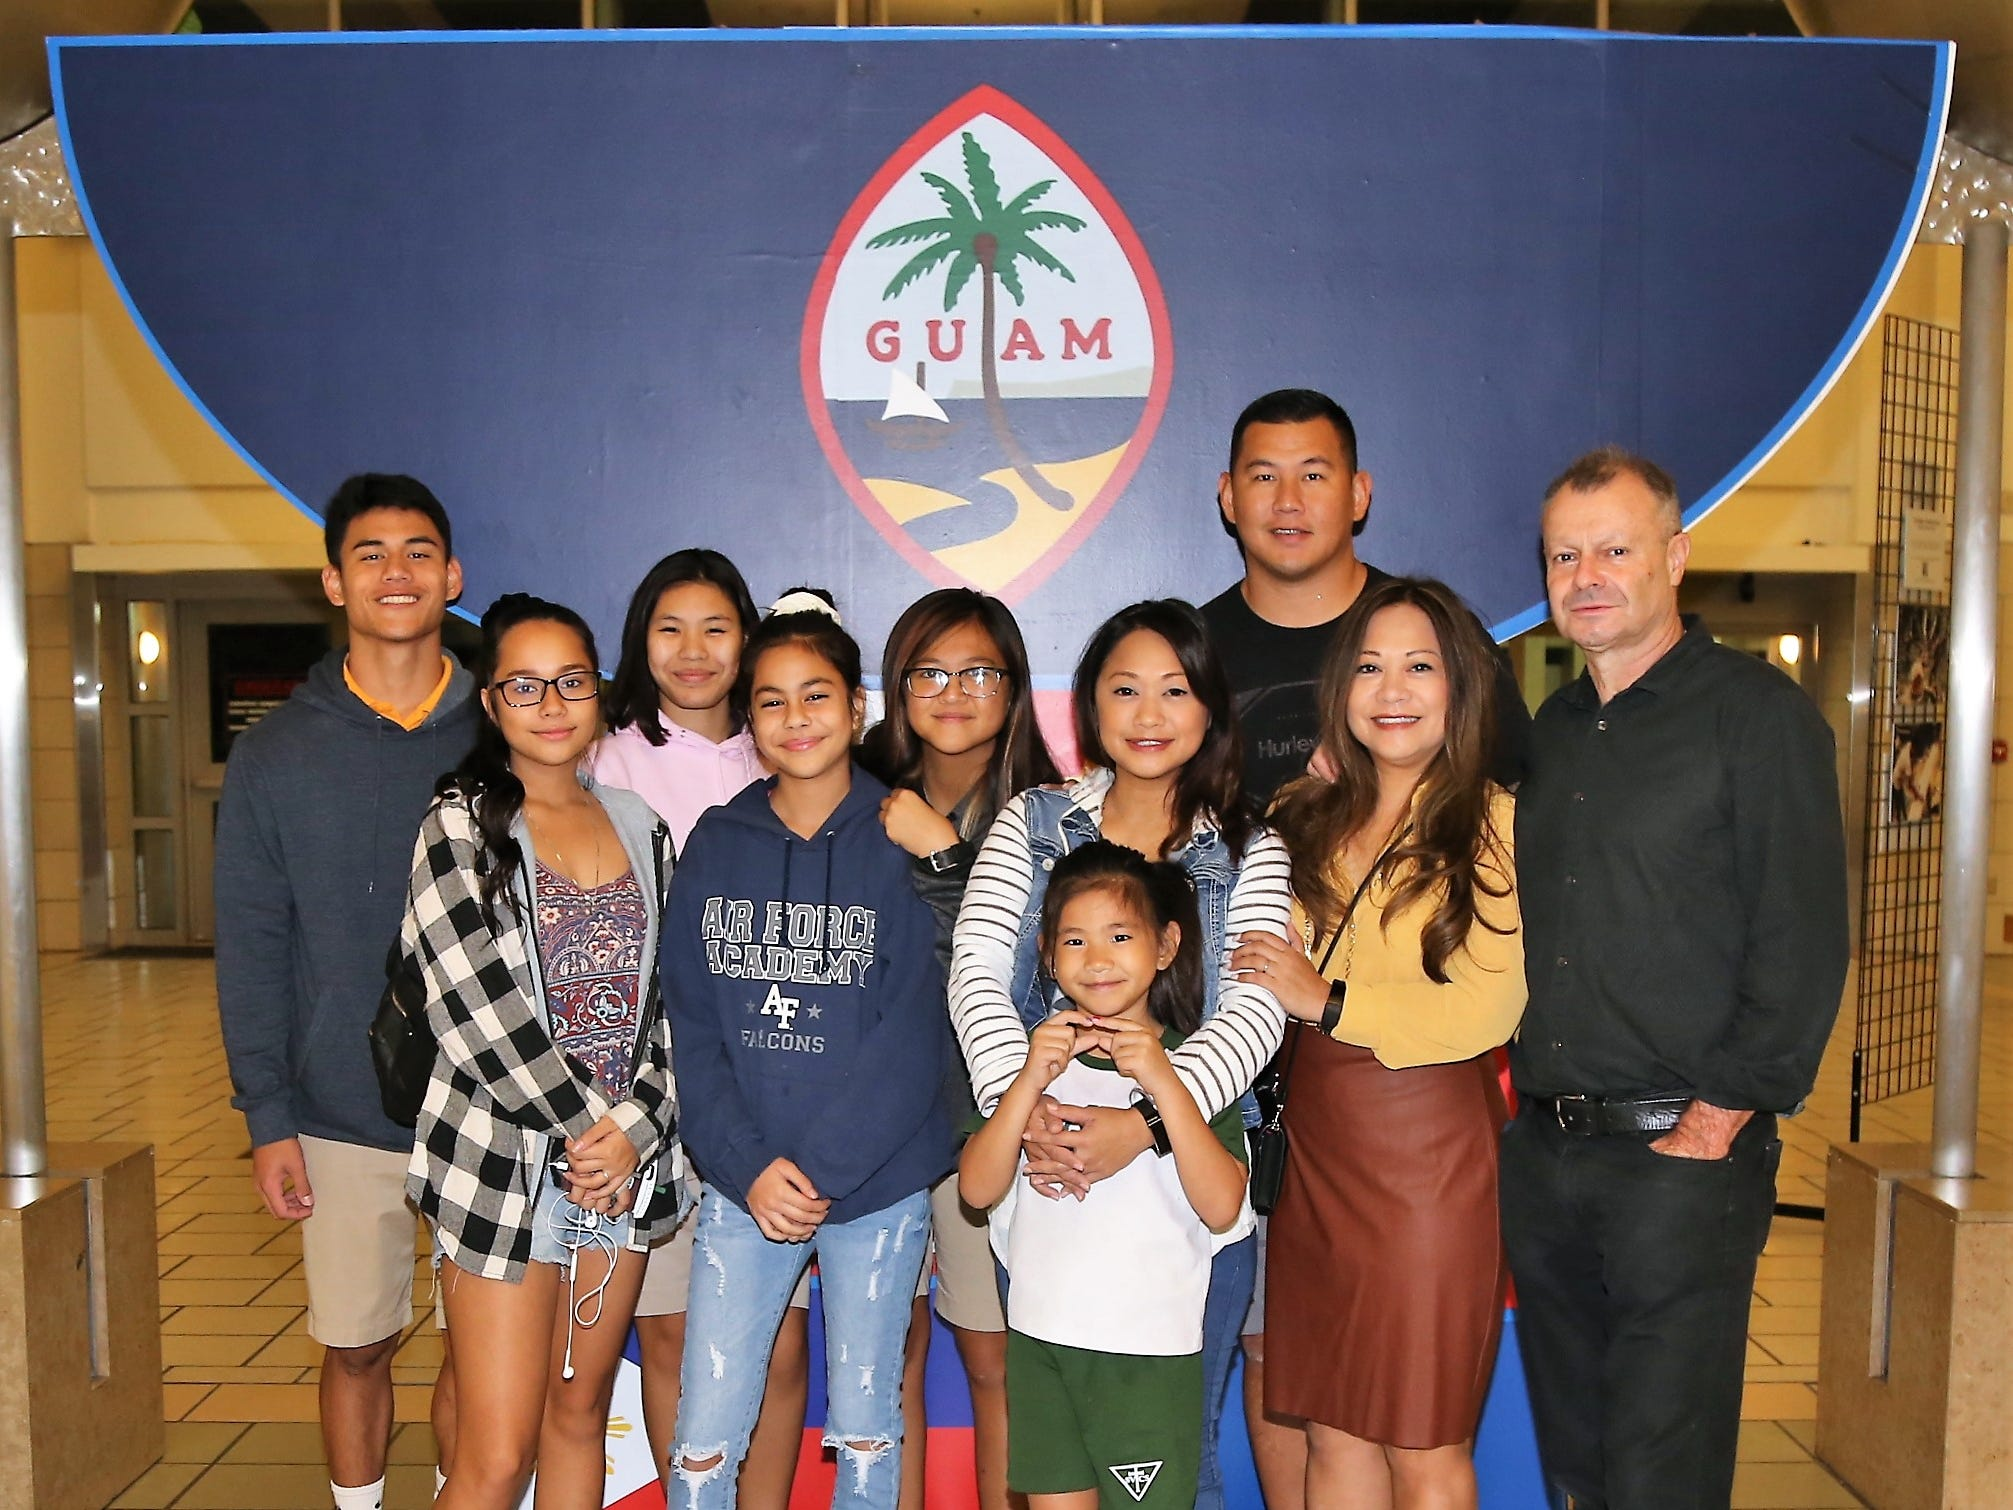 Technical Sgt. Michelle Castro, from the Guam Air National Guard's 254th Air Base Group's Cyber Flight, at center in stripes, poses for a photo with family members at the Guam International Airport Authority last week, just prior to departing for a deployment in support of Operation Inherent Resolve in Southwest Asia.